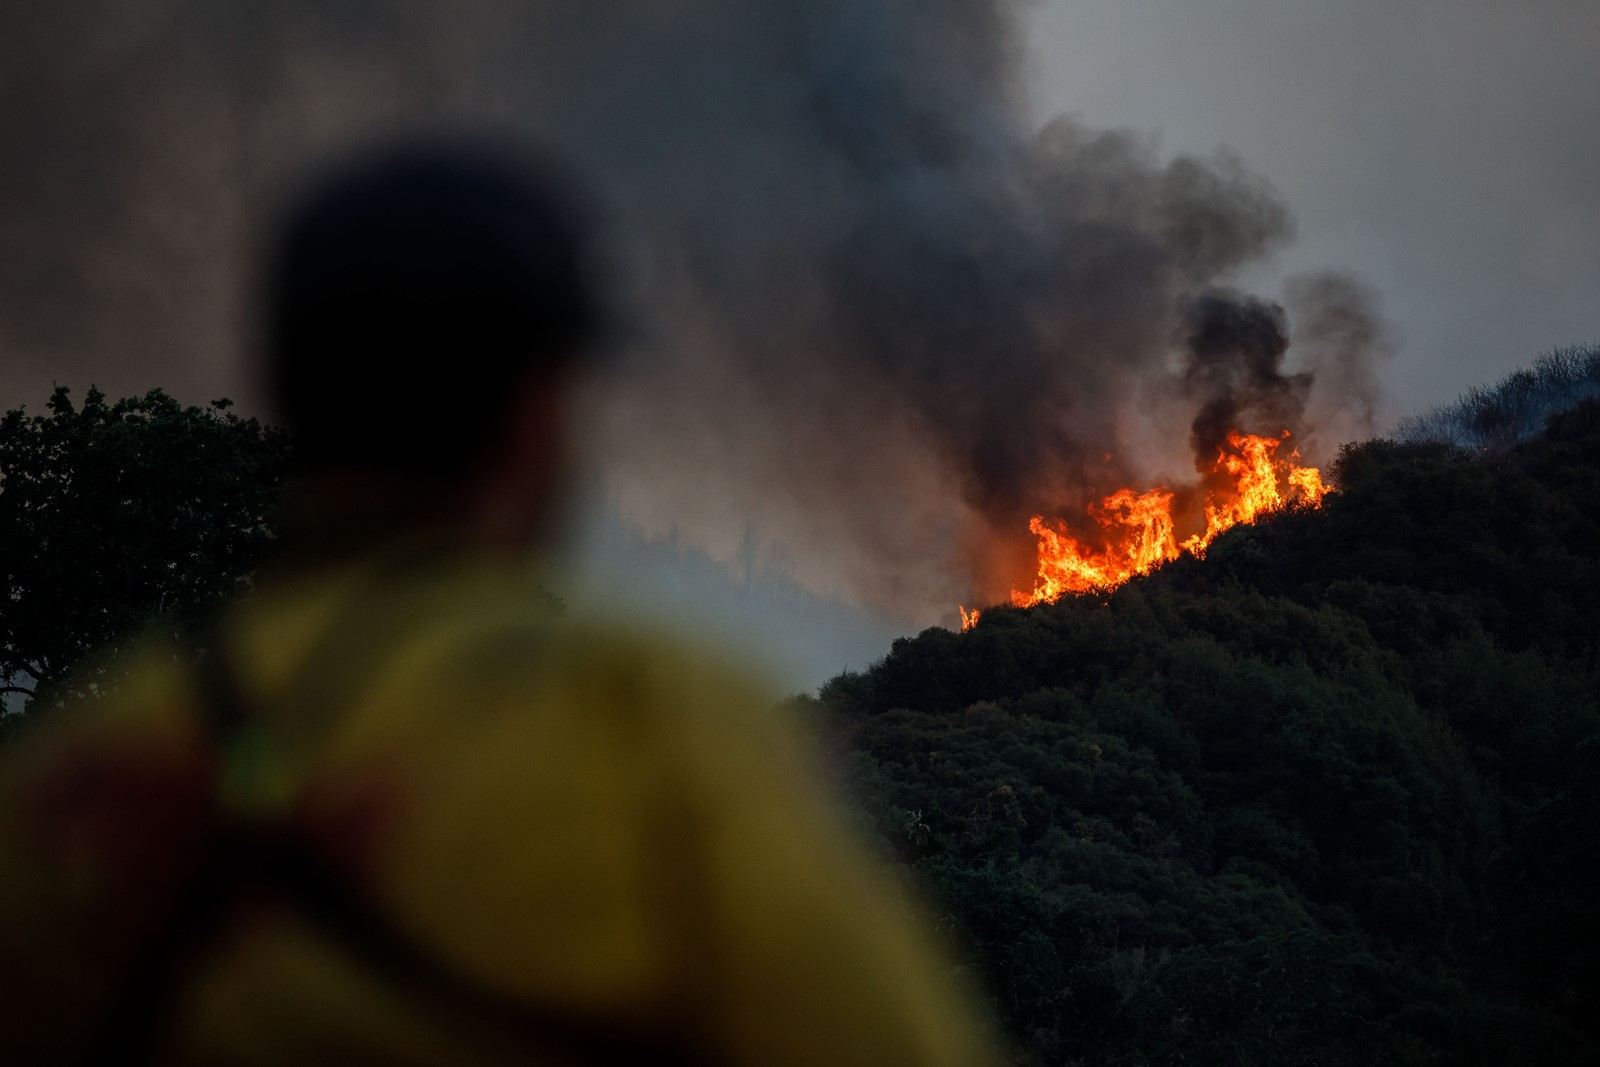 Firefighters monitor the progression of the River fire in southern Mendocino County, California on Wednesday. — Photograph: Marcus Yam/Los Angeles Times.